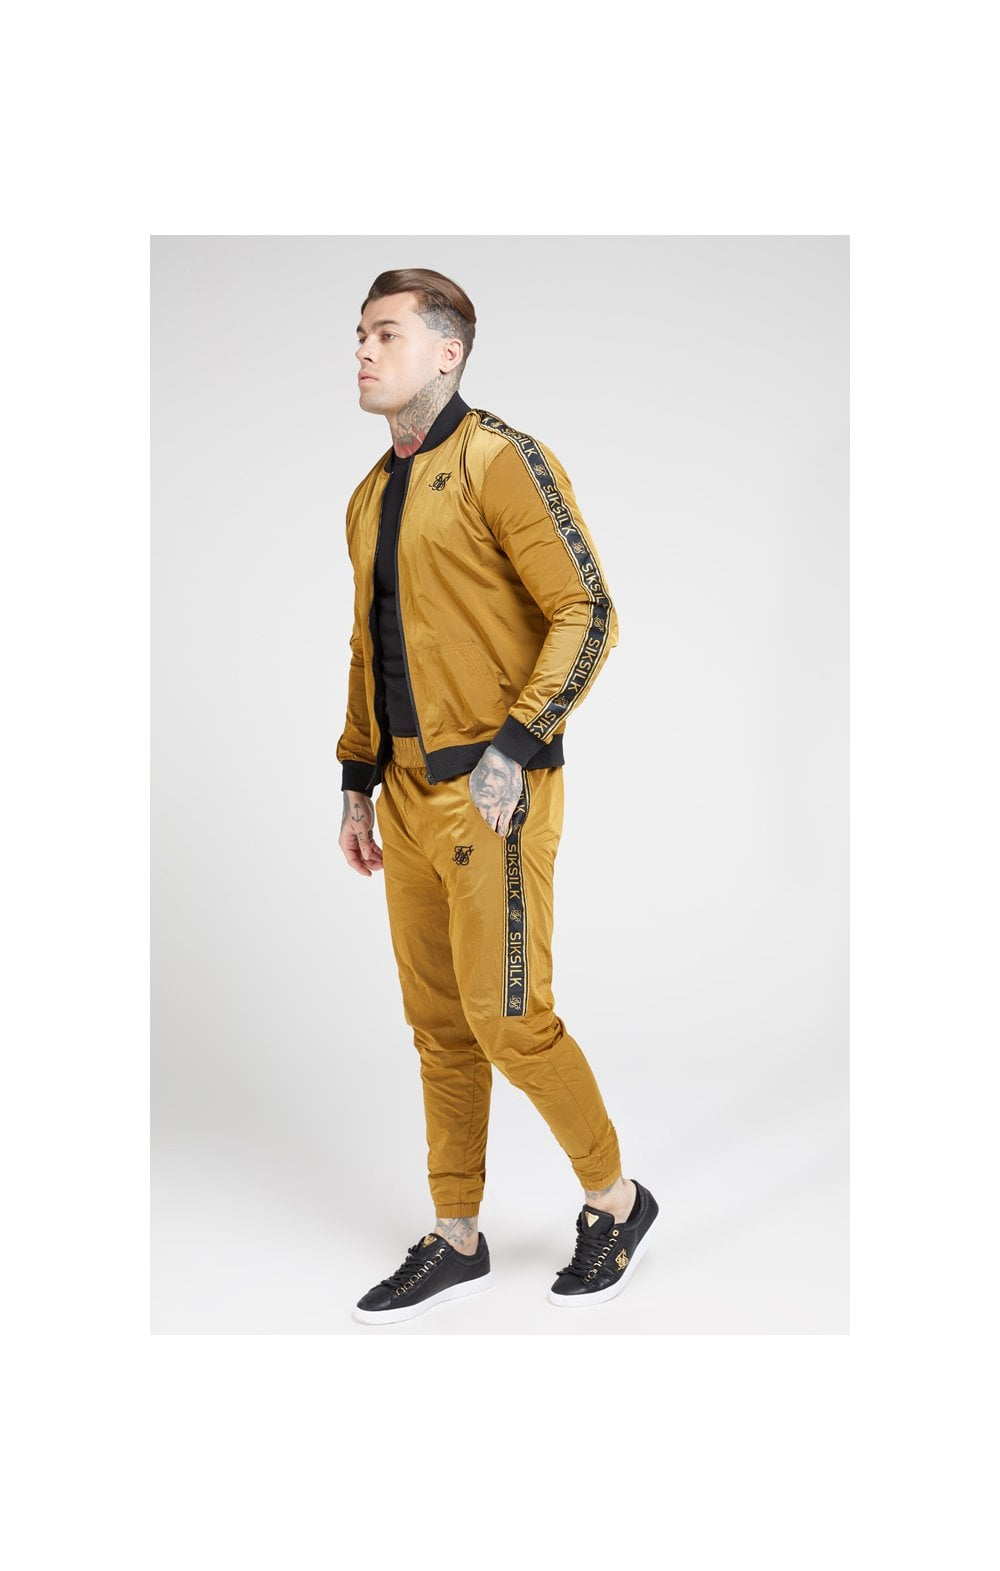 Load image into Gallery viewer, SikSilk Crushed Nylon Taped Joggers – Golden Mustard (4)